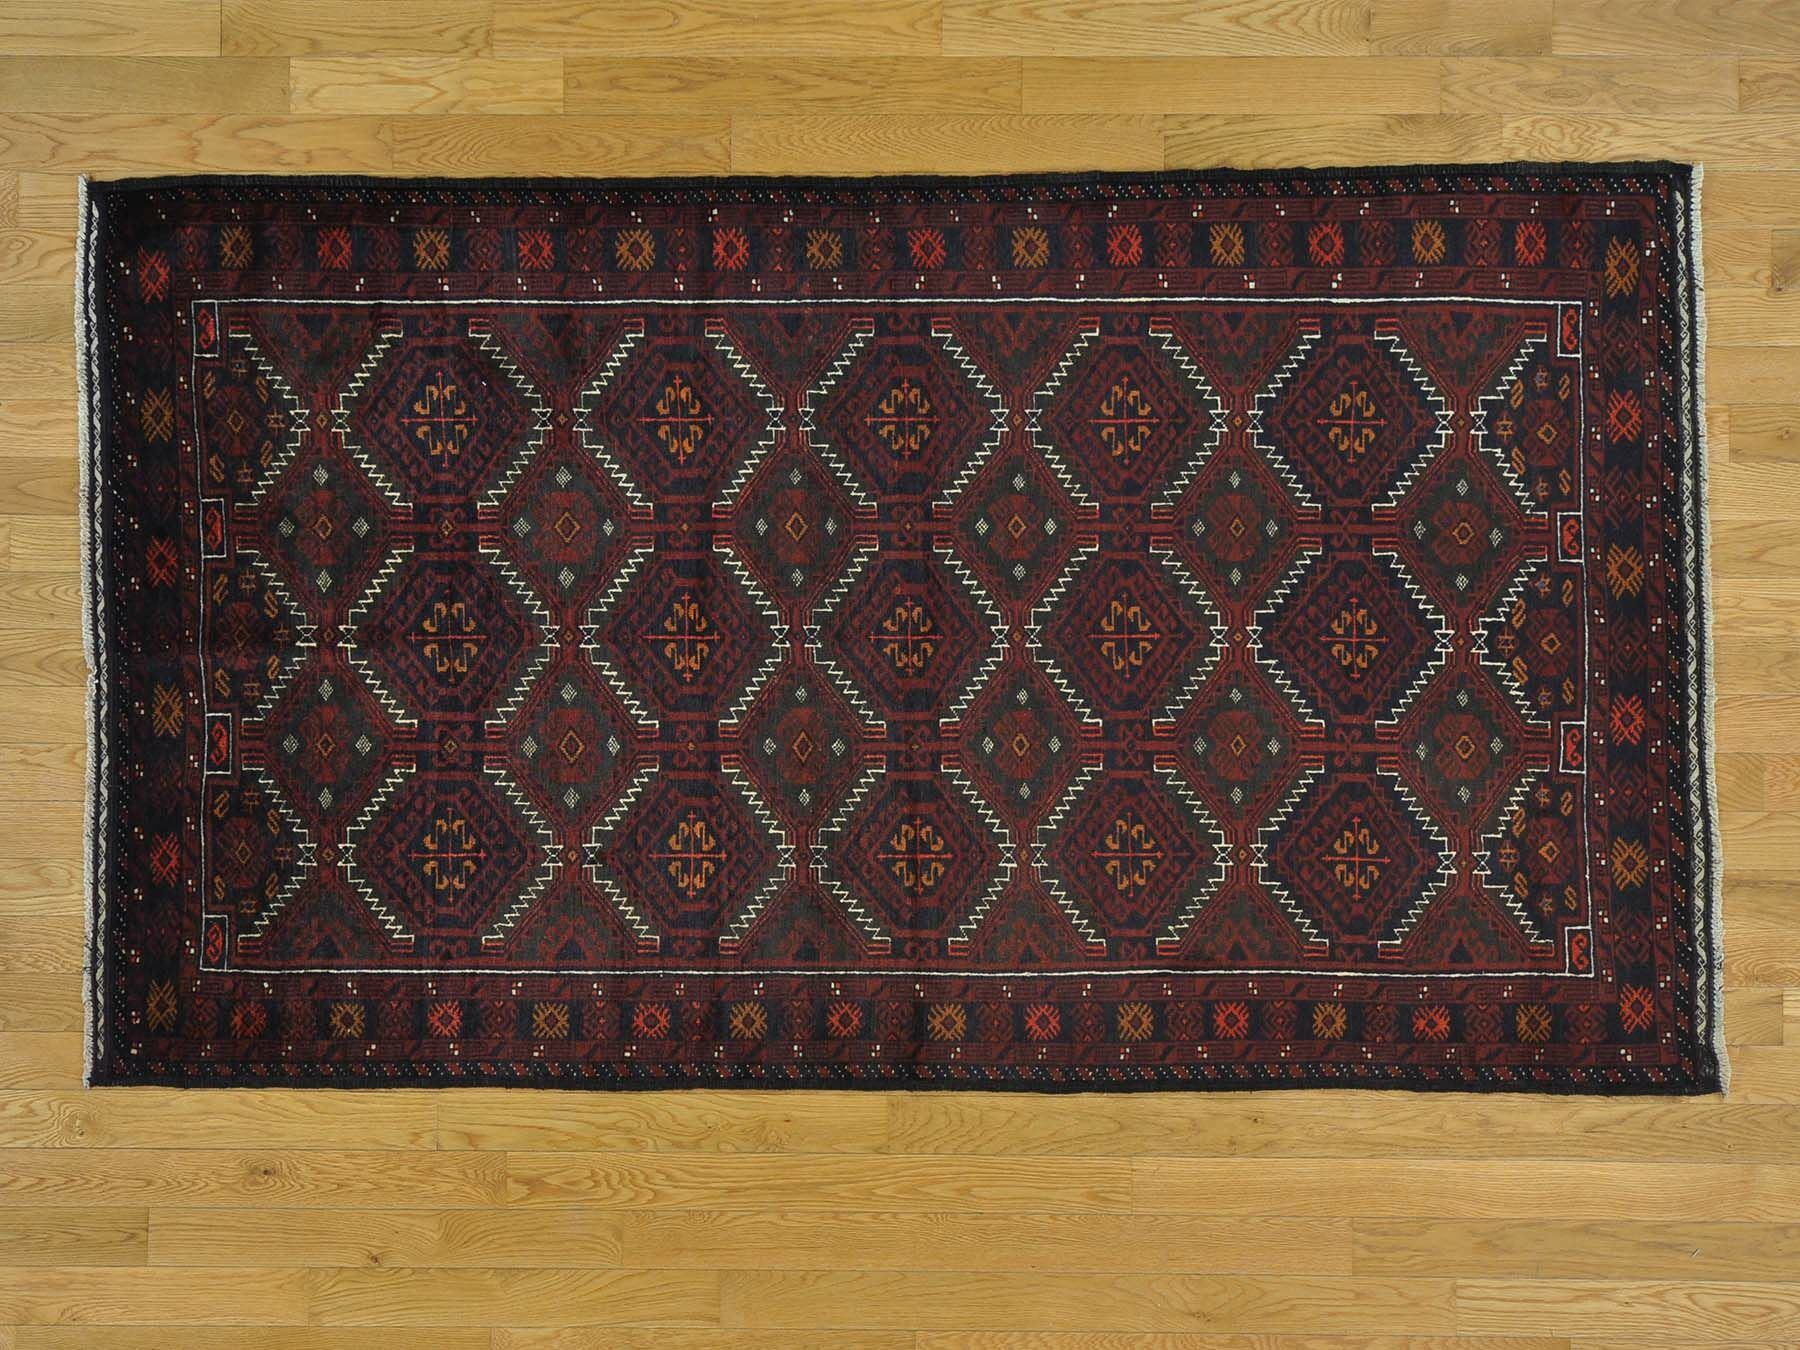 One-of-a-Kind Branch Geometric Design Afghan Baluch Hand-Knotted Blue Wool Area Rug